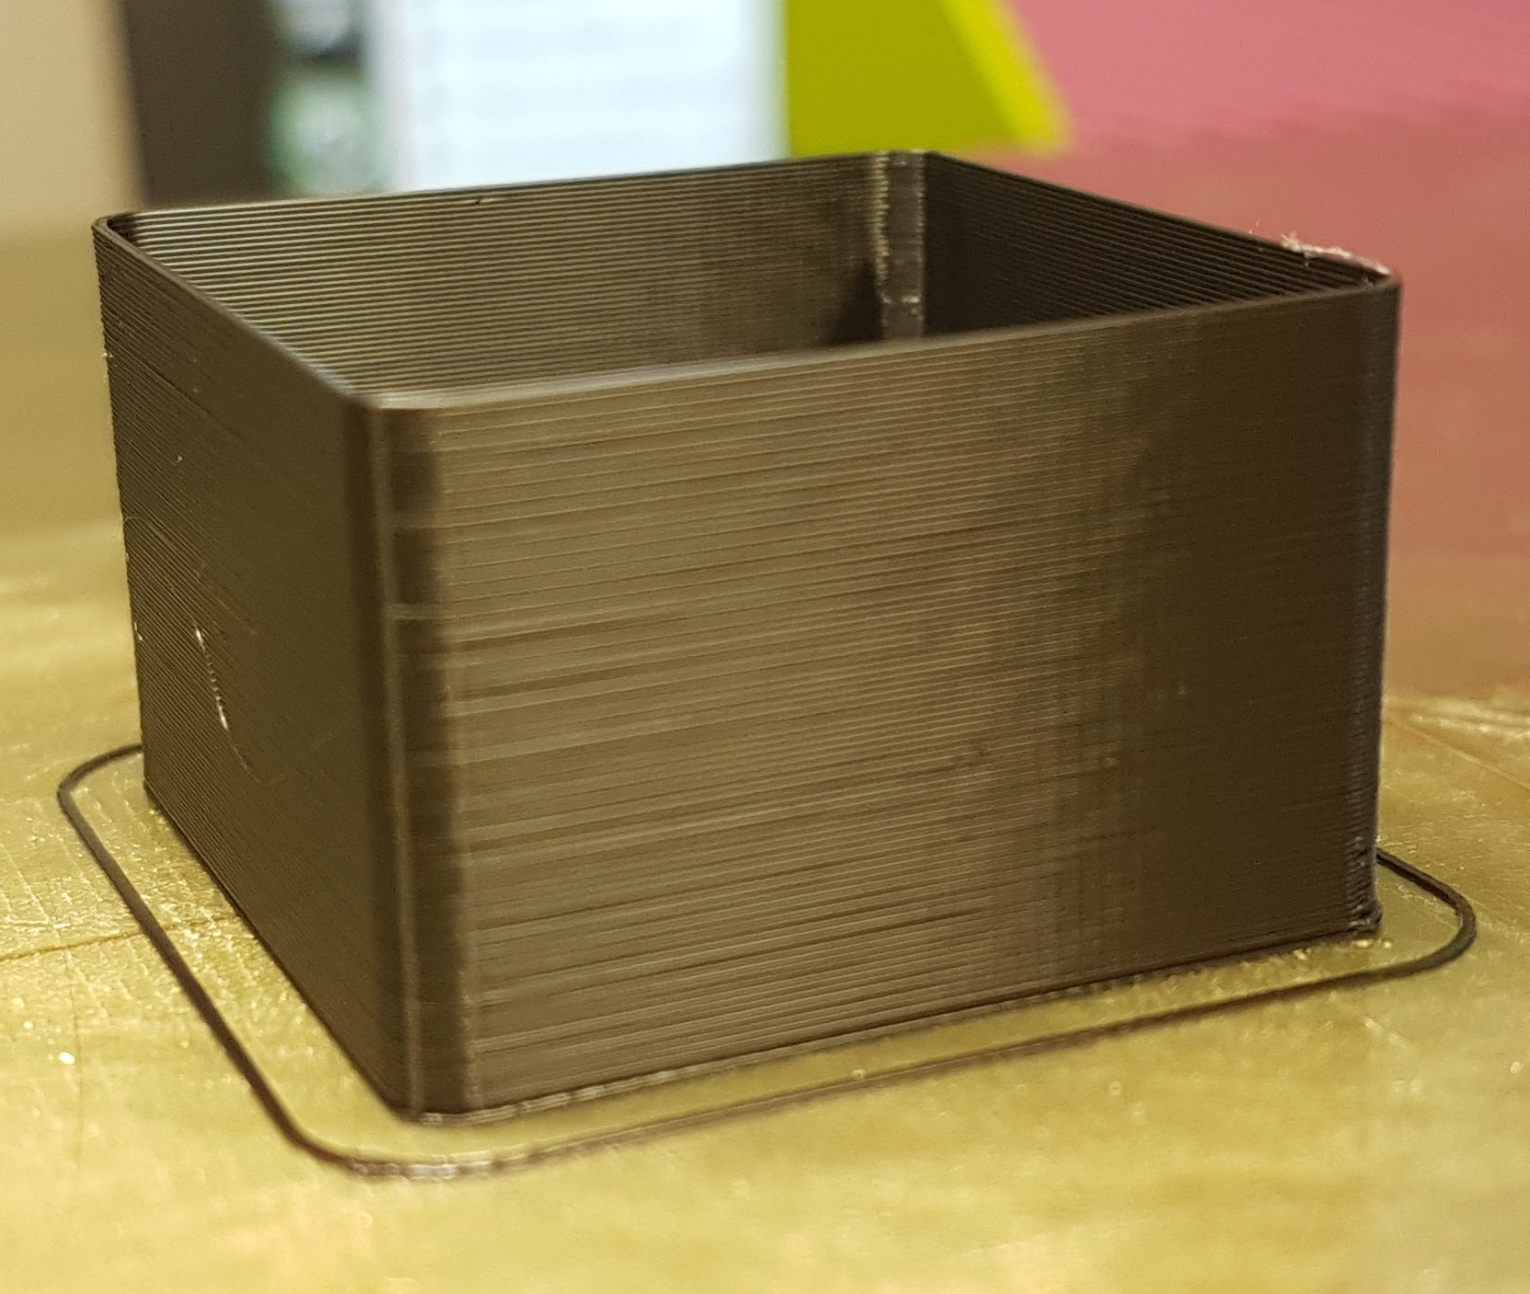 Inconsistent Extrusion · Issue #602 · prusa3d/Prusa-Firmware